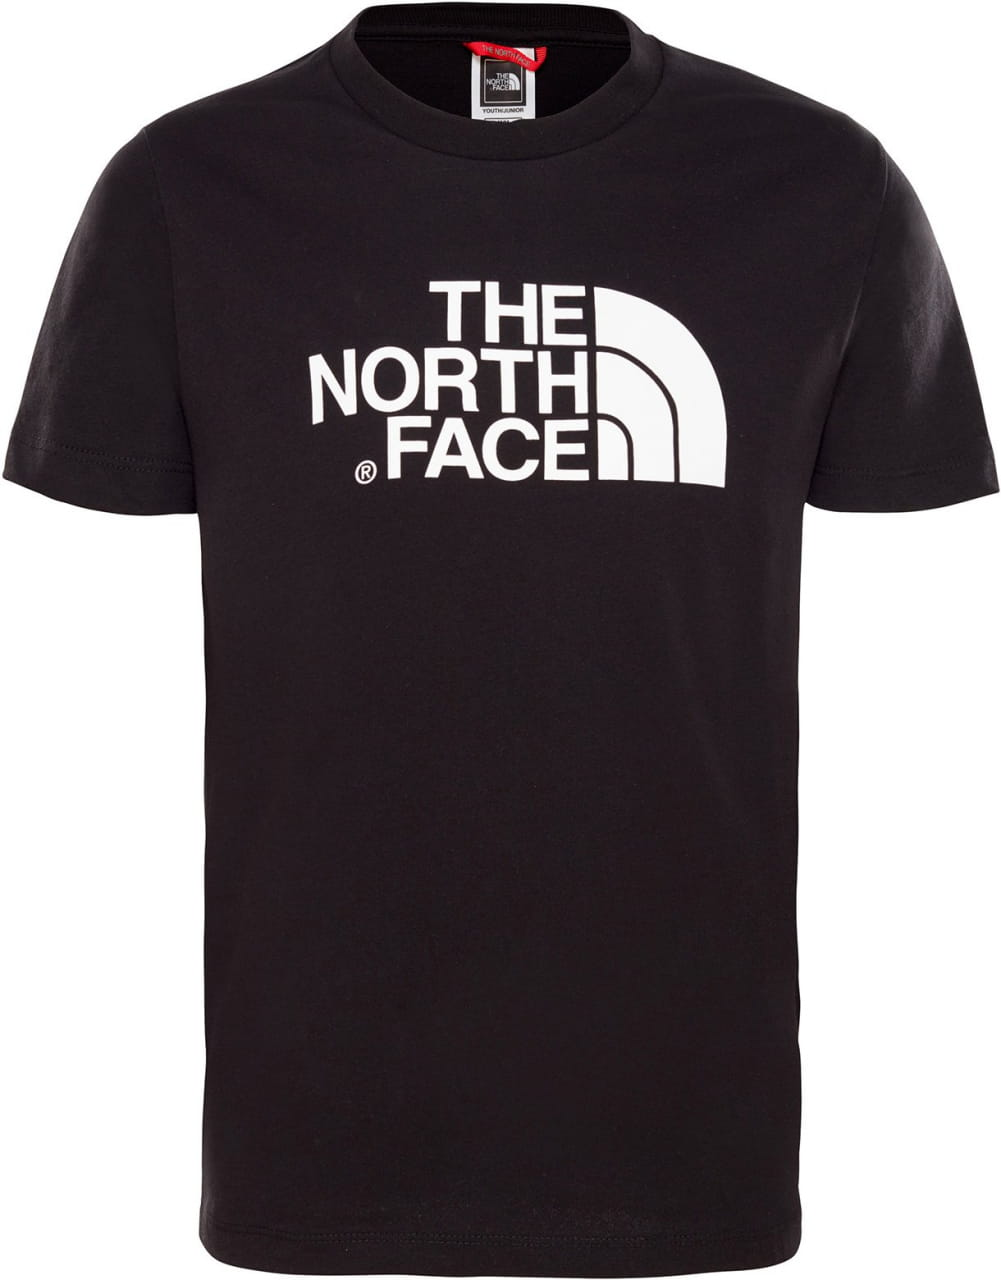 Dětské tričko The North Face Youth Easy Short-Sleeve T-Shirt